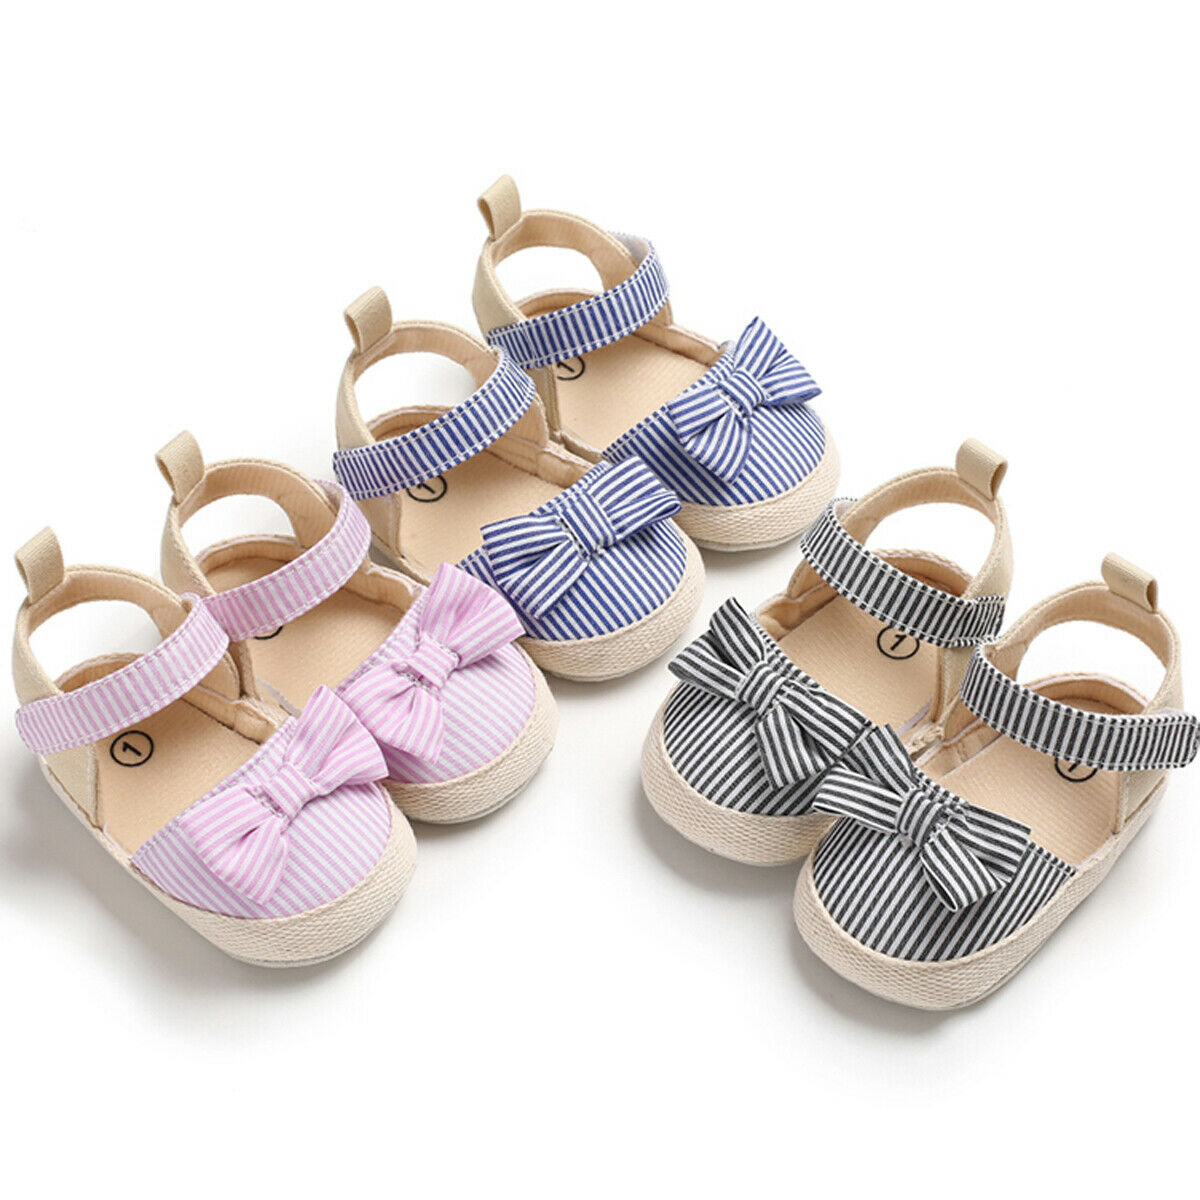 shoes for infants